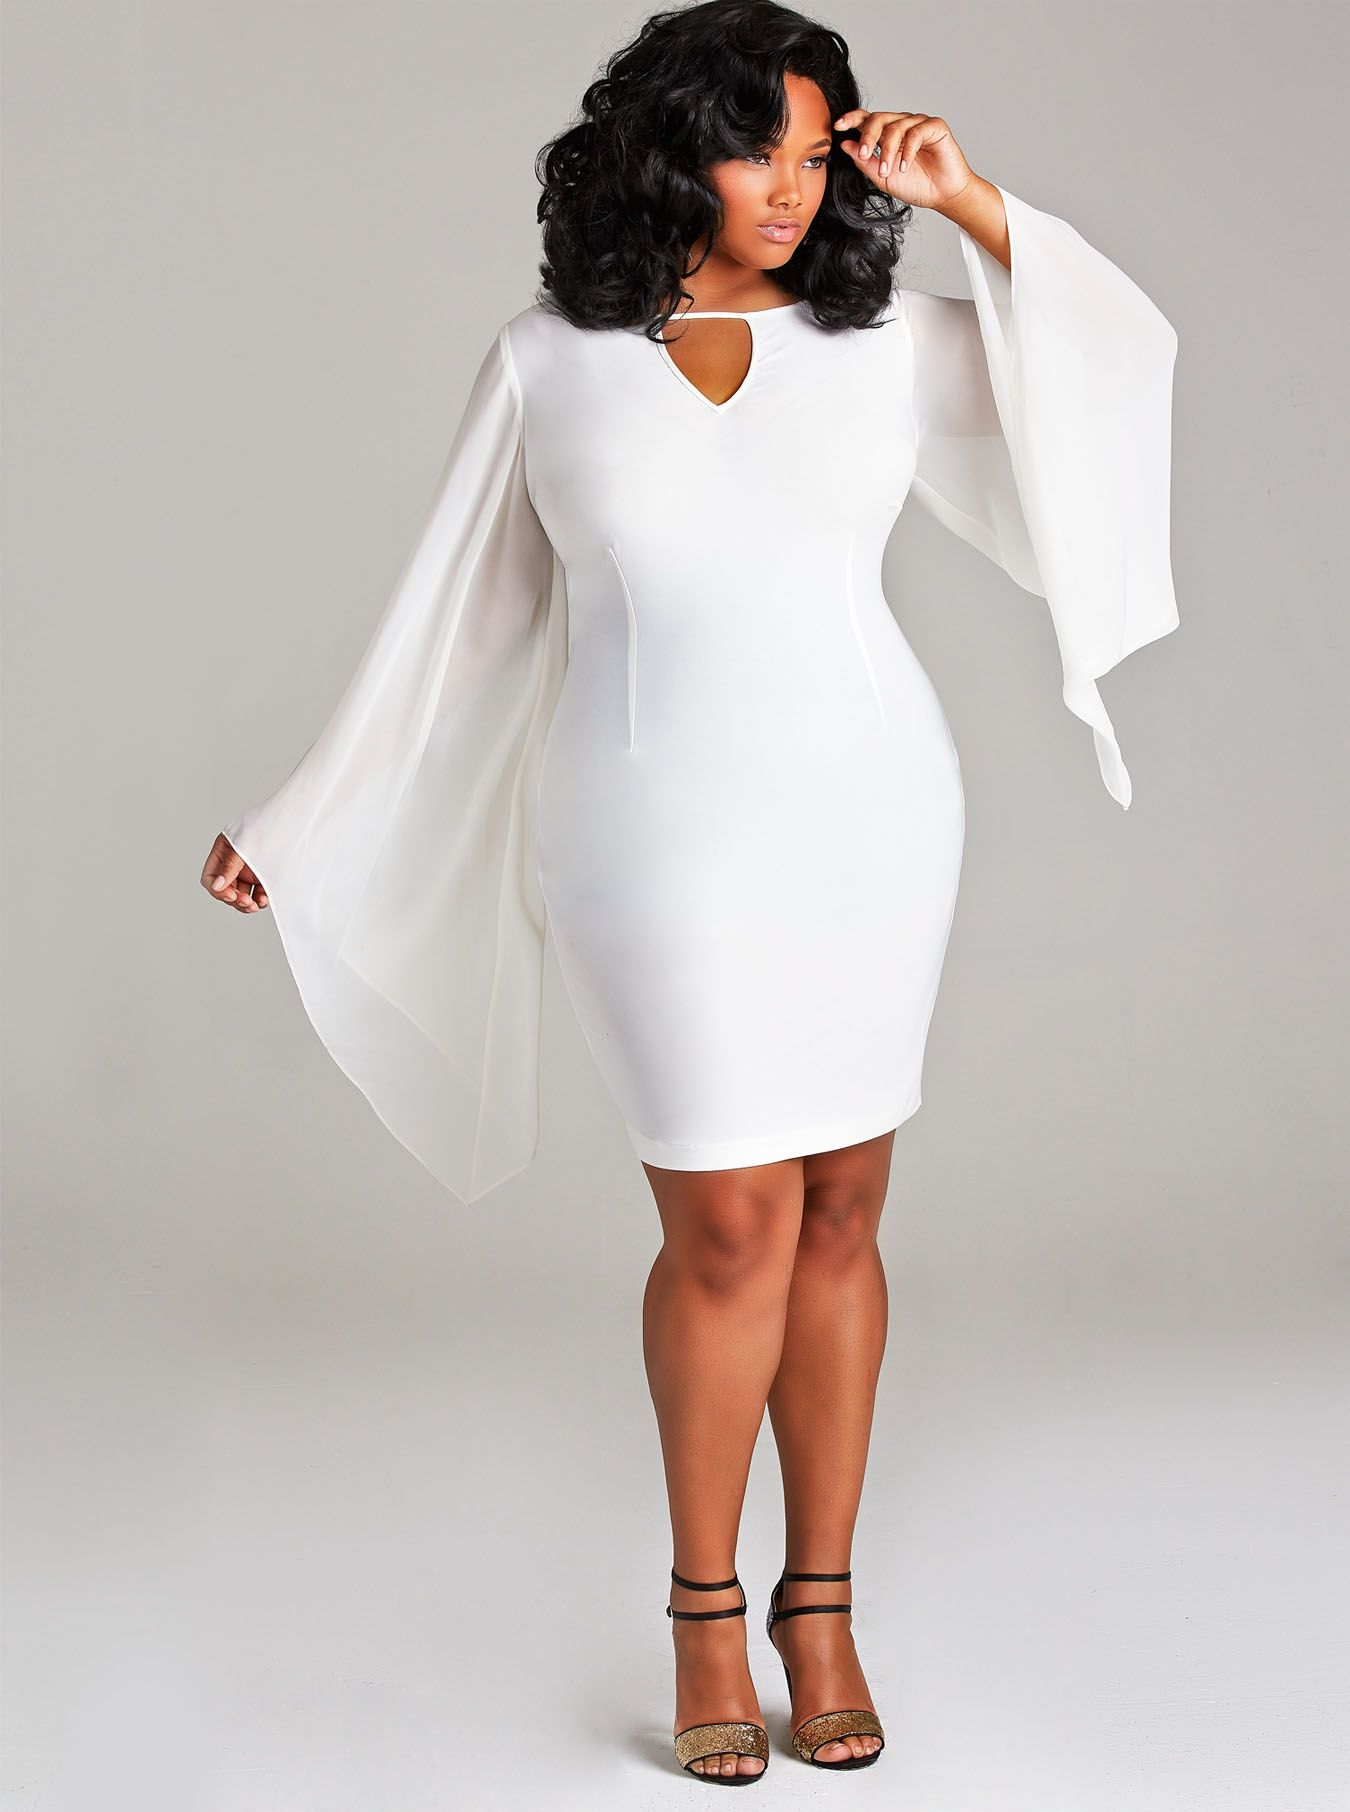 Emejing All White Dresses Plus Size Gallery - Mikejaninesmith.us ...